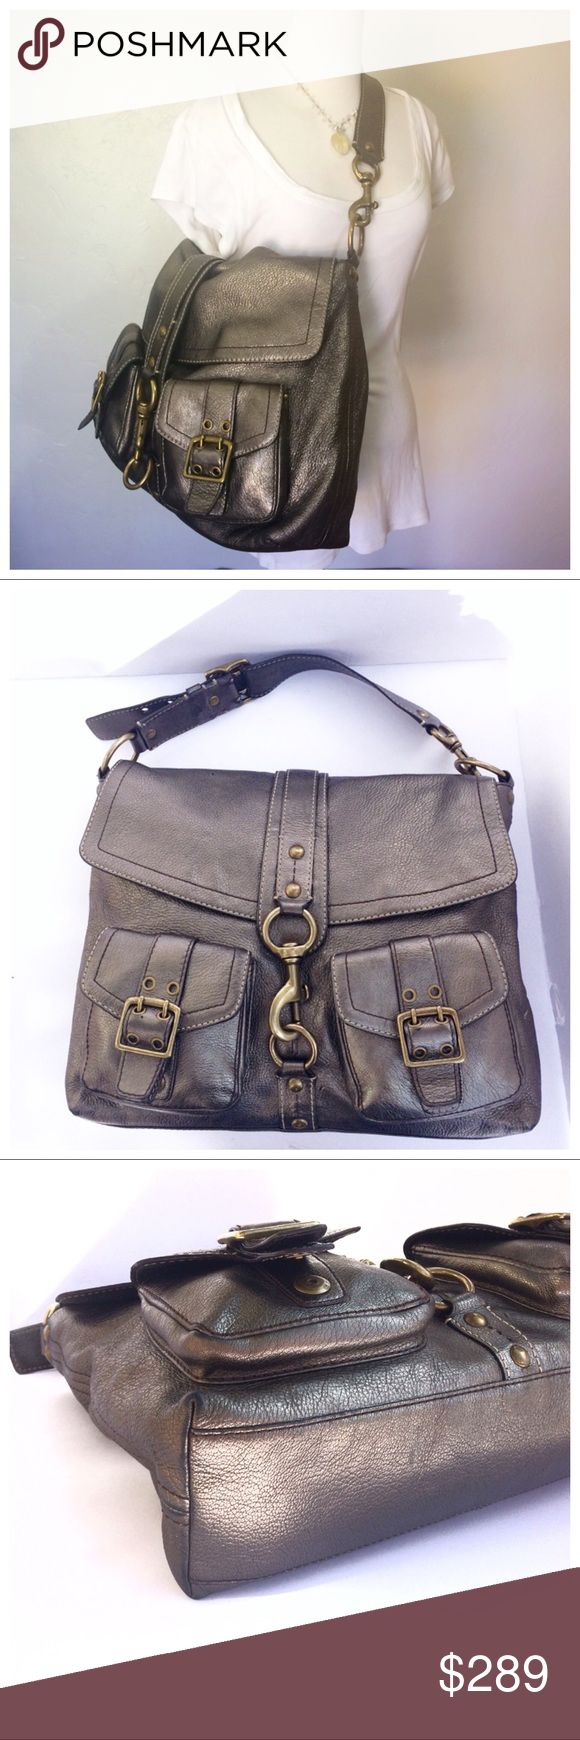 """Rare Coach Legacy Brooklyn Xl Messenger Bag Rare and stunning Coach Legacy Brooklyn Xl Messenger Shoulder Bag pewter/antique brass, Pebbled leather. Coach G06K 7466 Retail $798 Measures approx. 16"""" L x 15"""" H x 4"""" W  Adjustable strap drop 6.5"""" - 9""""   Brown signature lining. This substantial statement piece is perfect for every day, work, school or an overnight bag. It is very roomy and stylish.  Gently used in very good condition. Has a couple small marks/scuffs on front and back and bottom…"""